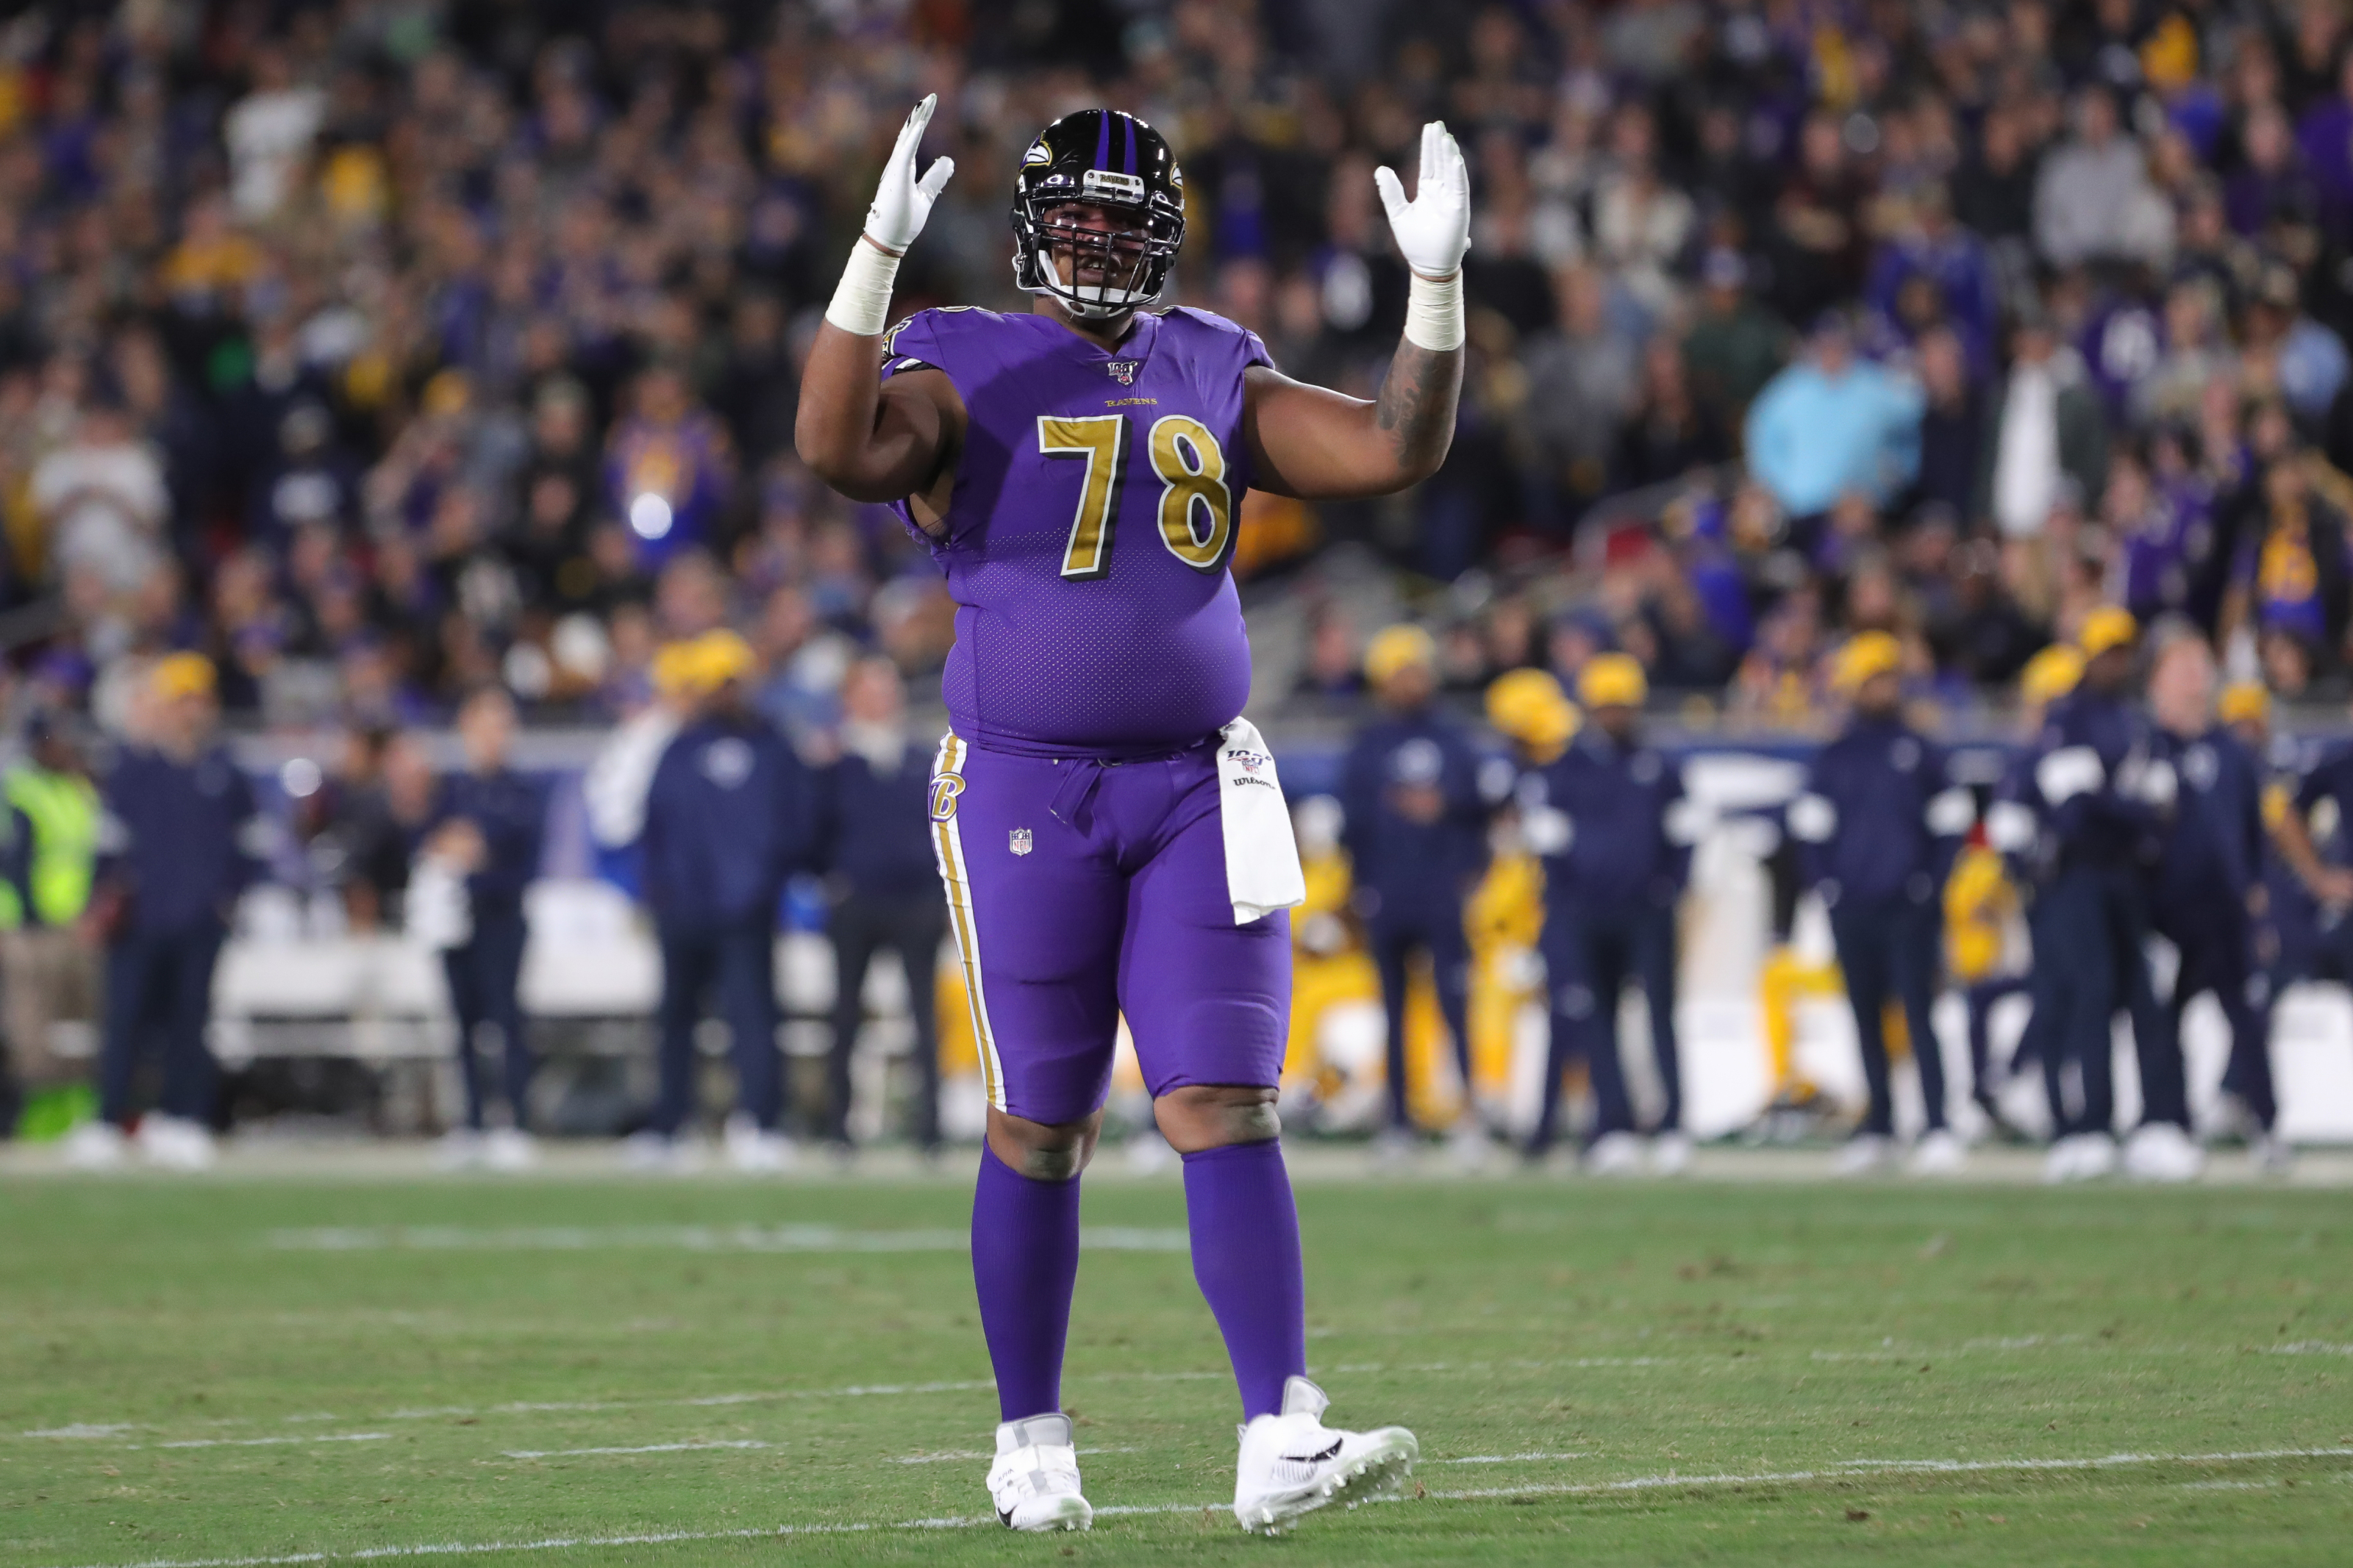 Is there any chance the Baltimore Ravens retain Orlando Brown Jr.?